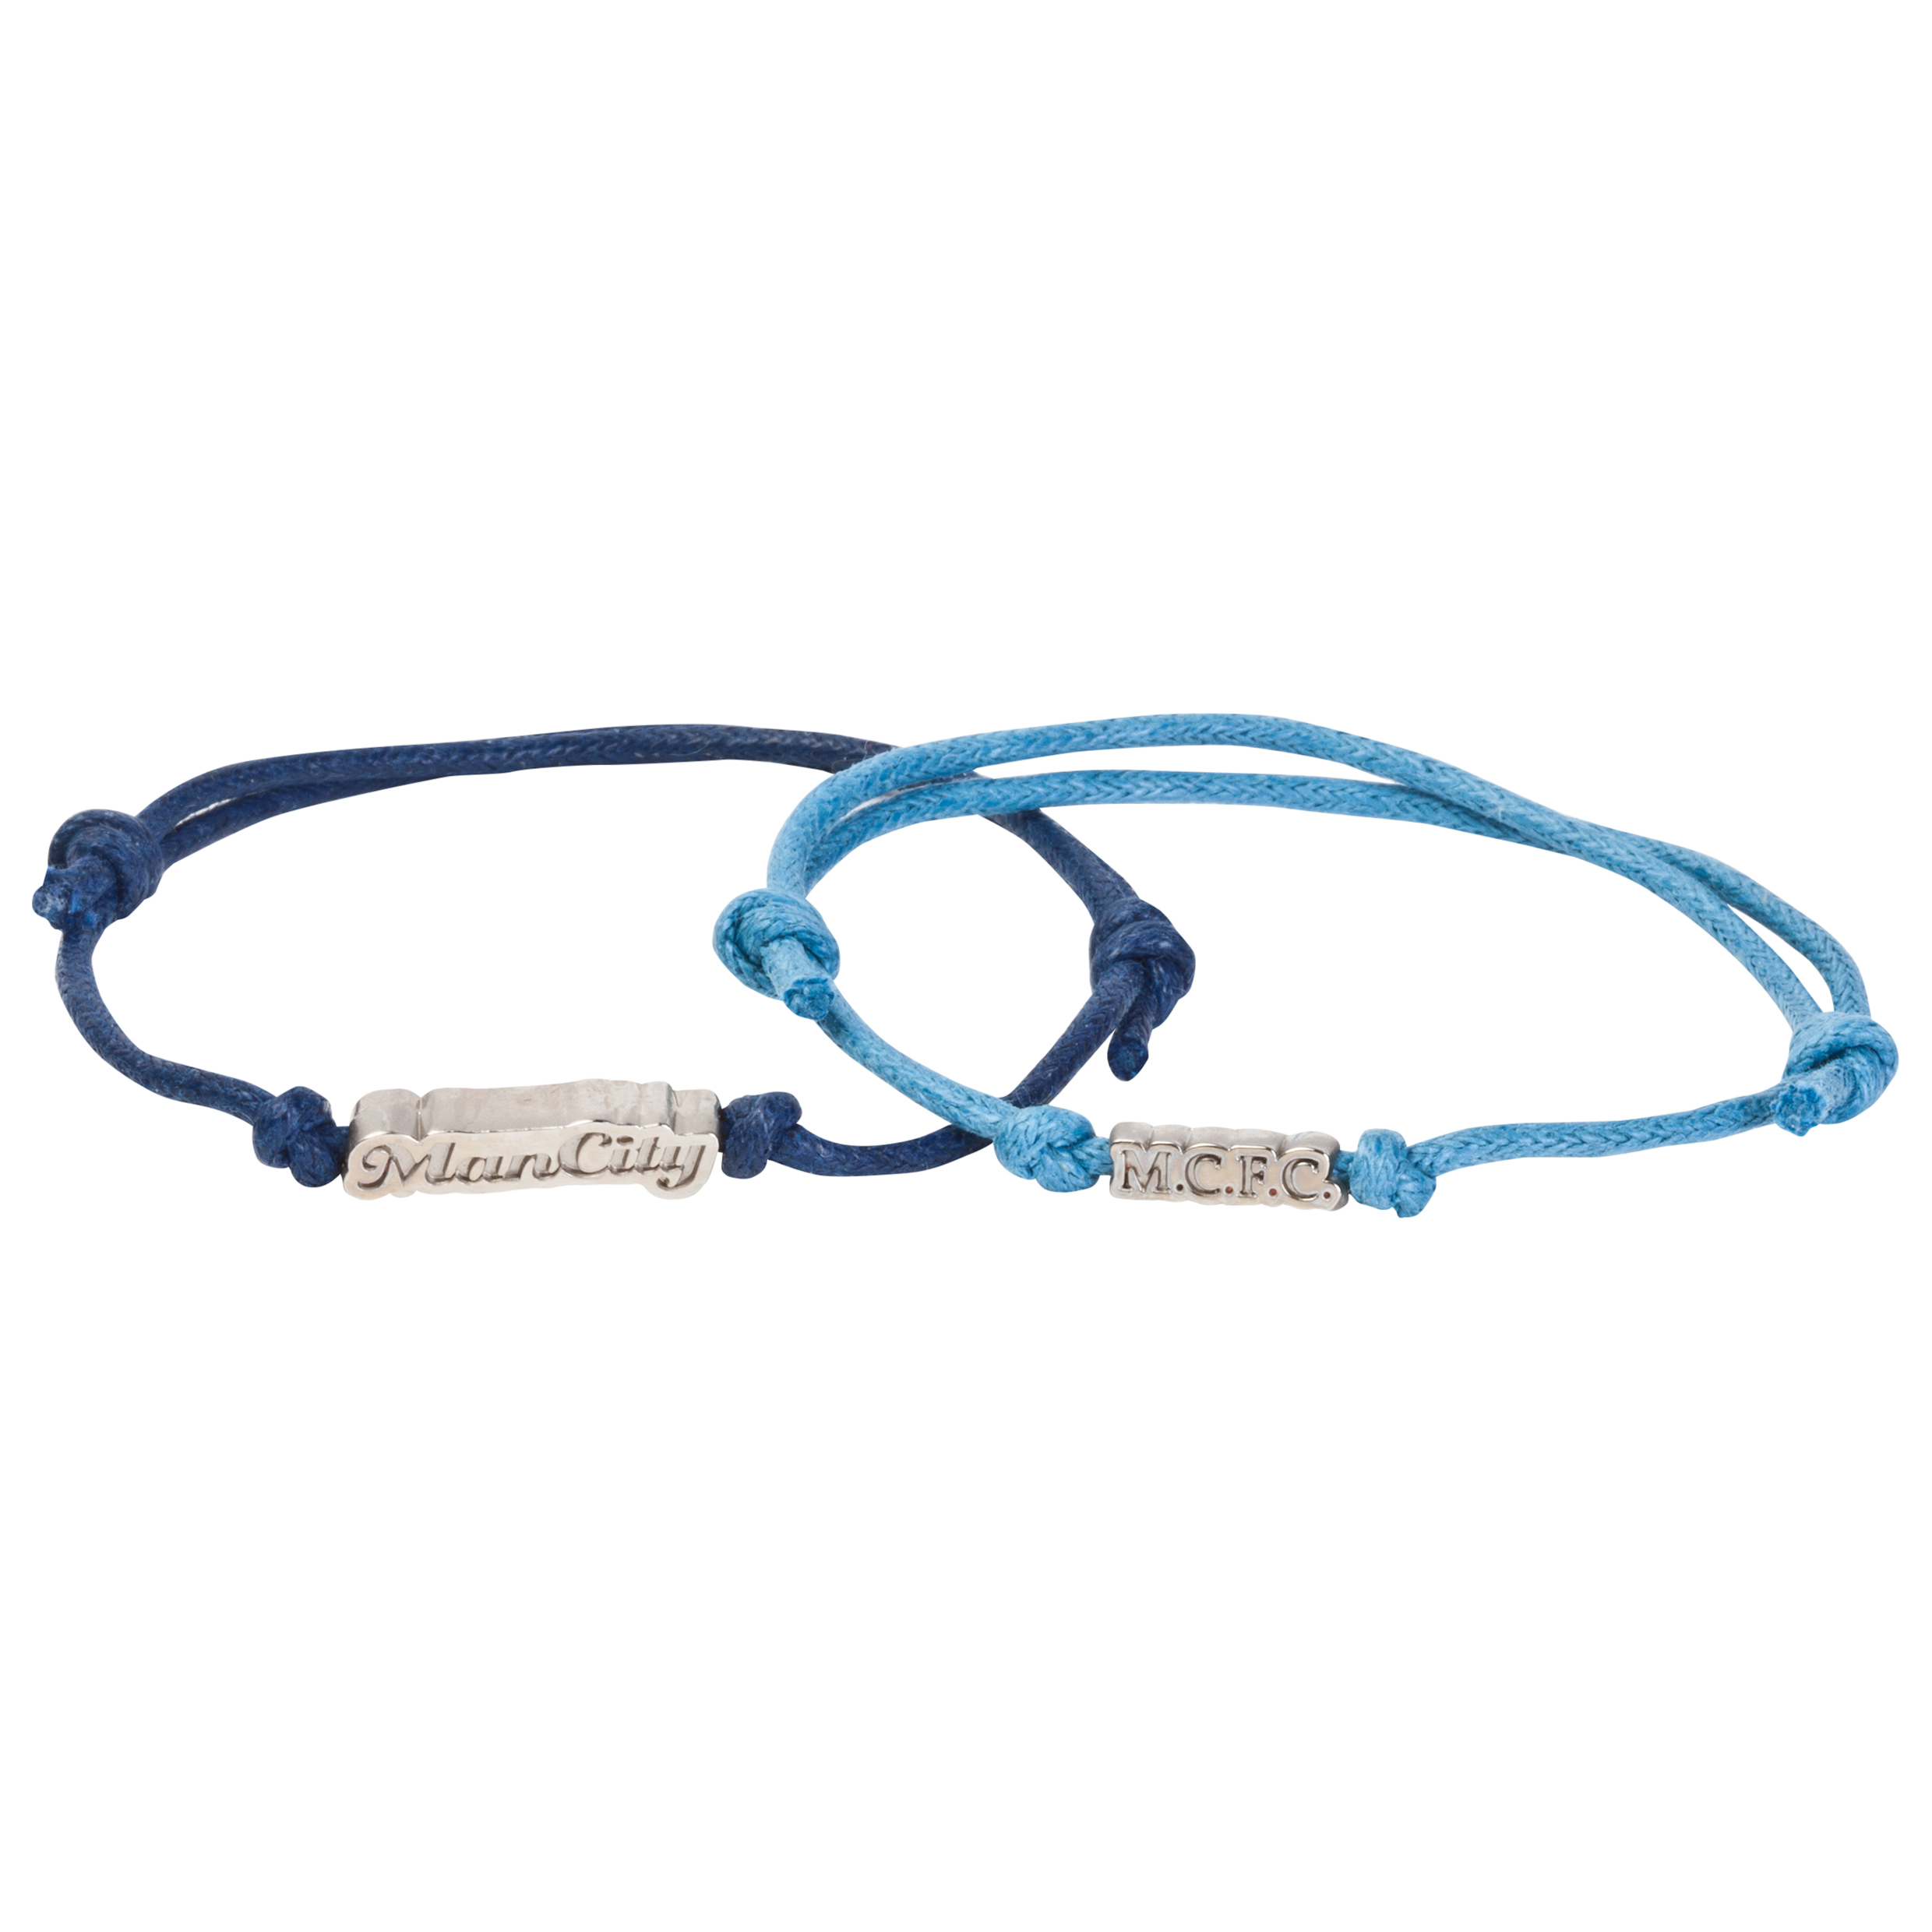 Manchester City Twin Pack Cord Bracelet